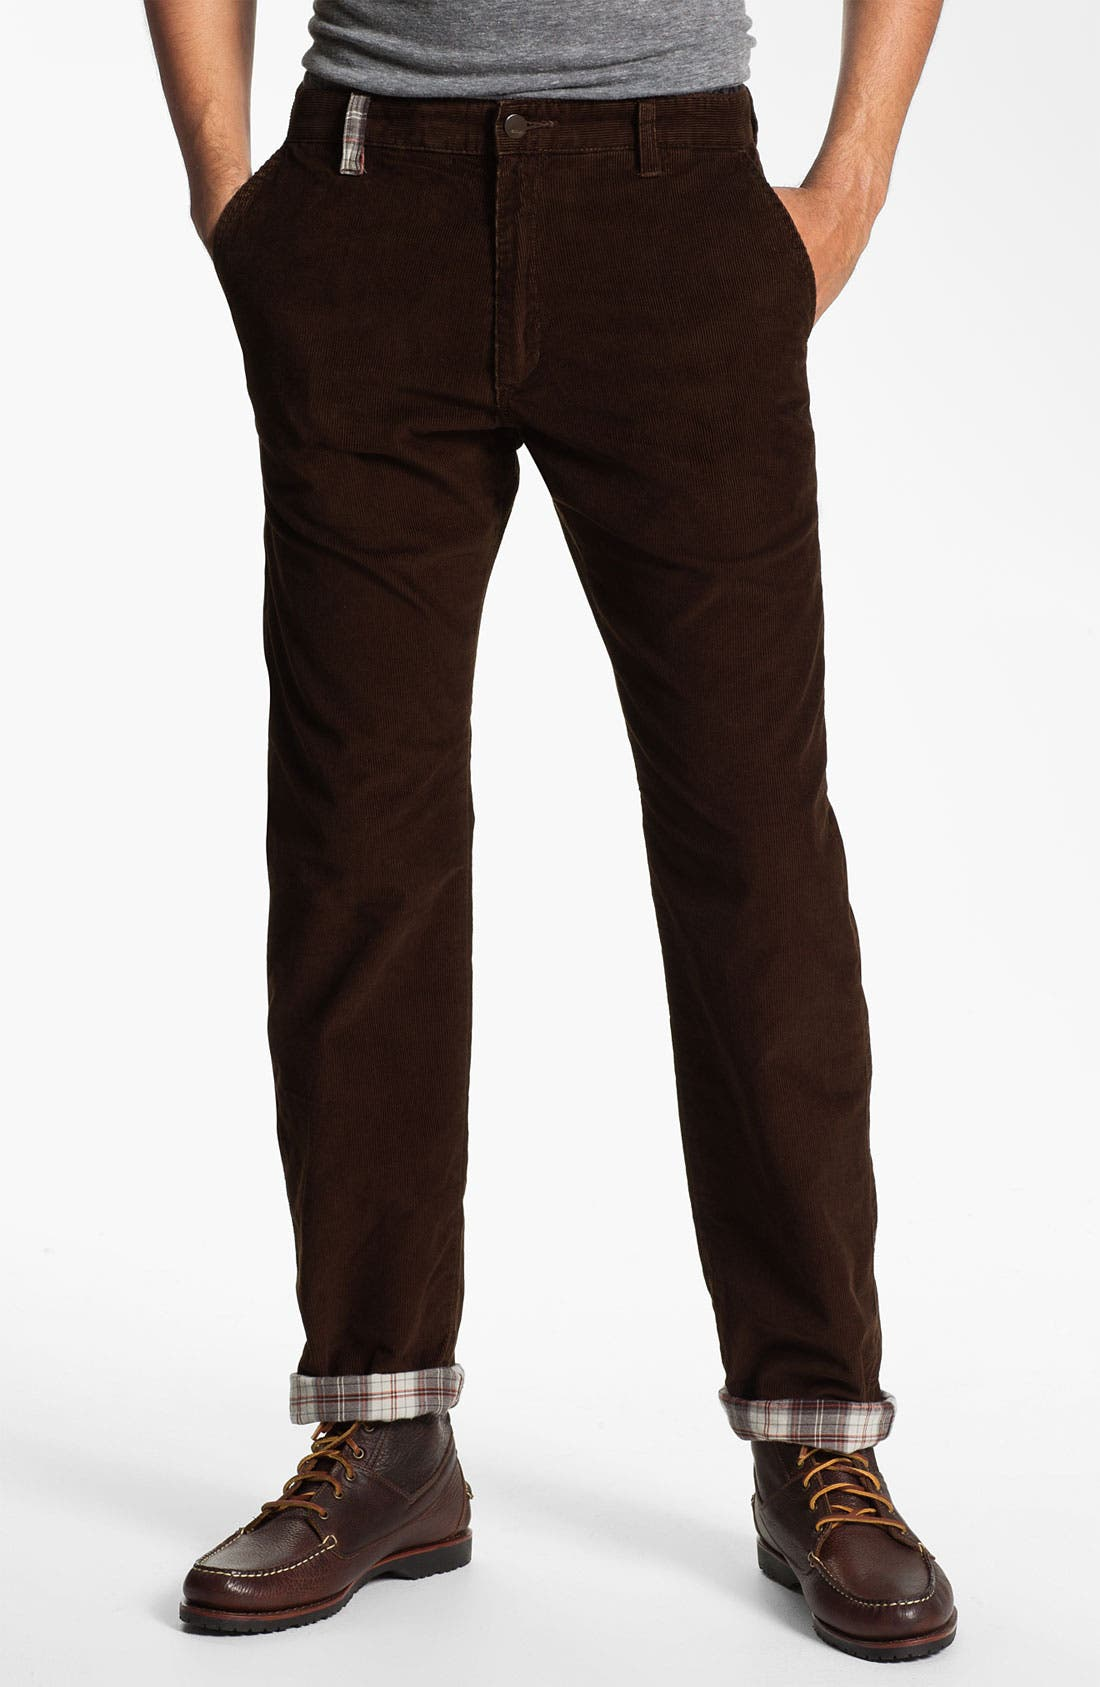 Alternate Image 1 Selected - Toddland Flannel Lined Slim Straight Leg Corduroy Pants